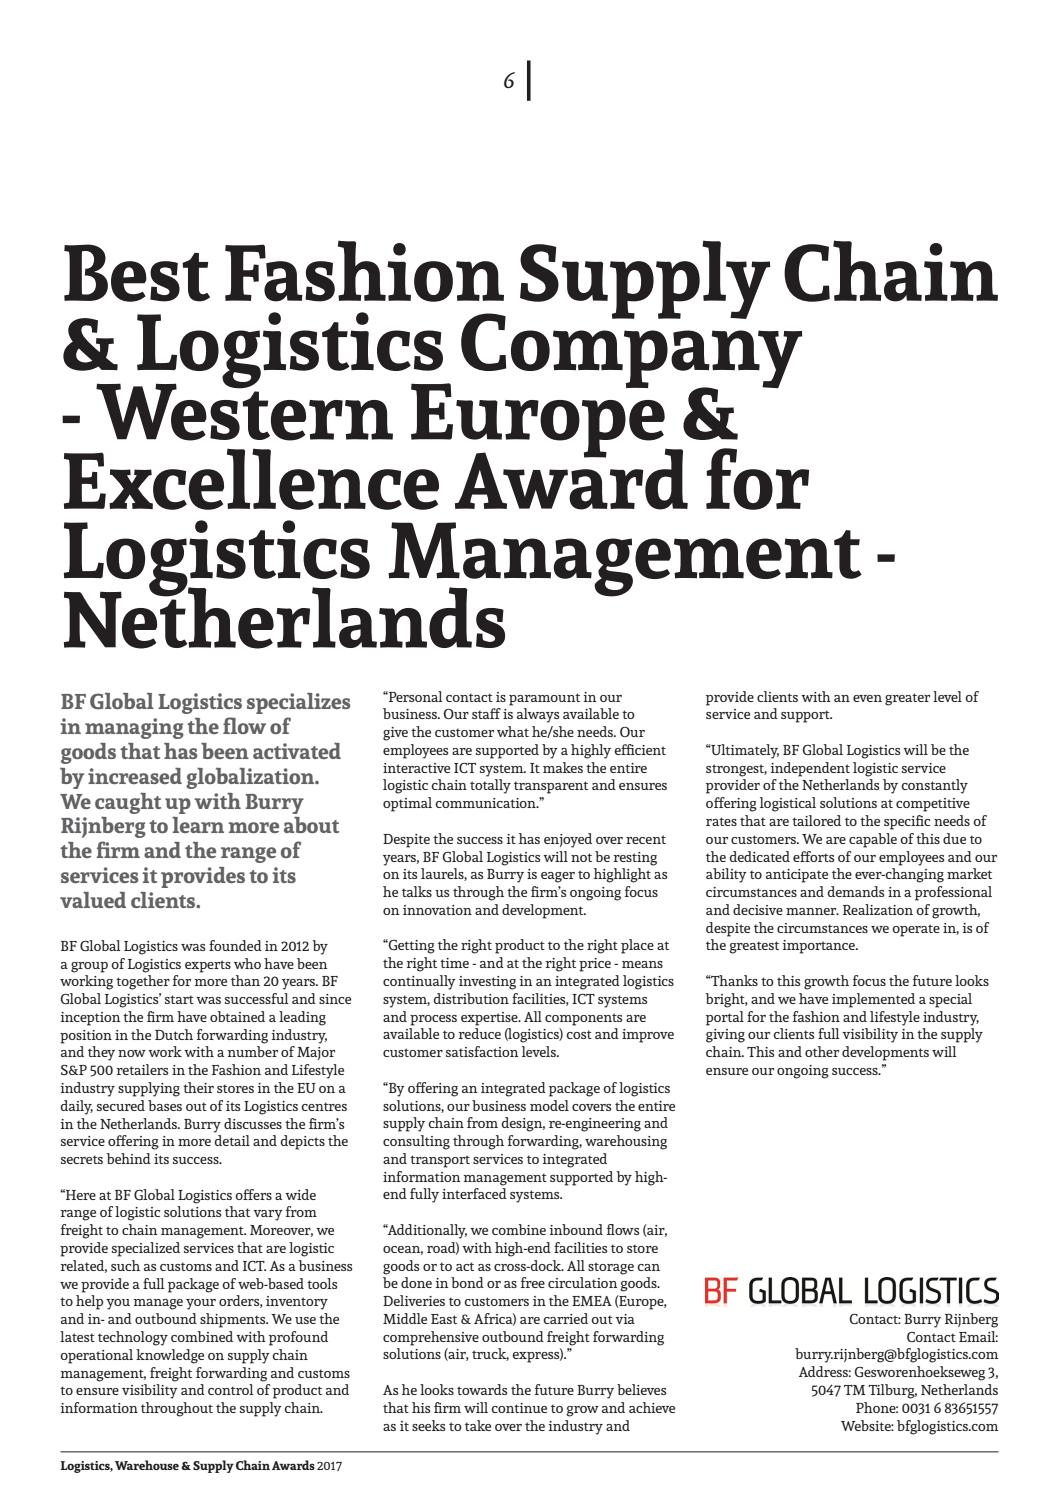 Transport News Logistics, Warehouse & Supply Chain Awards